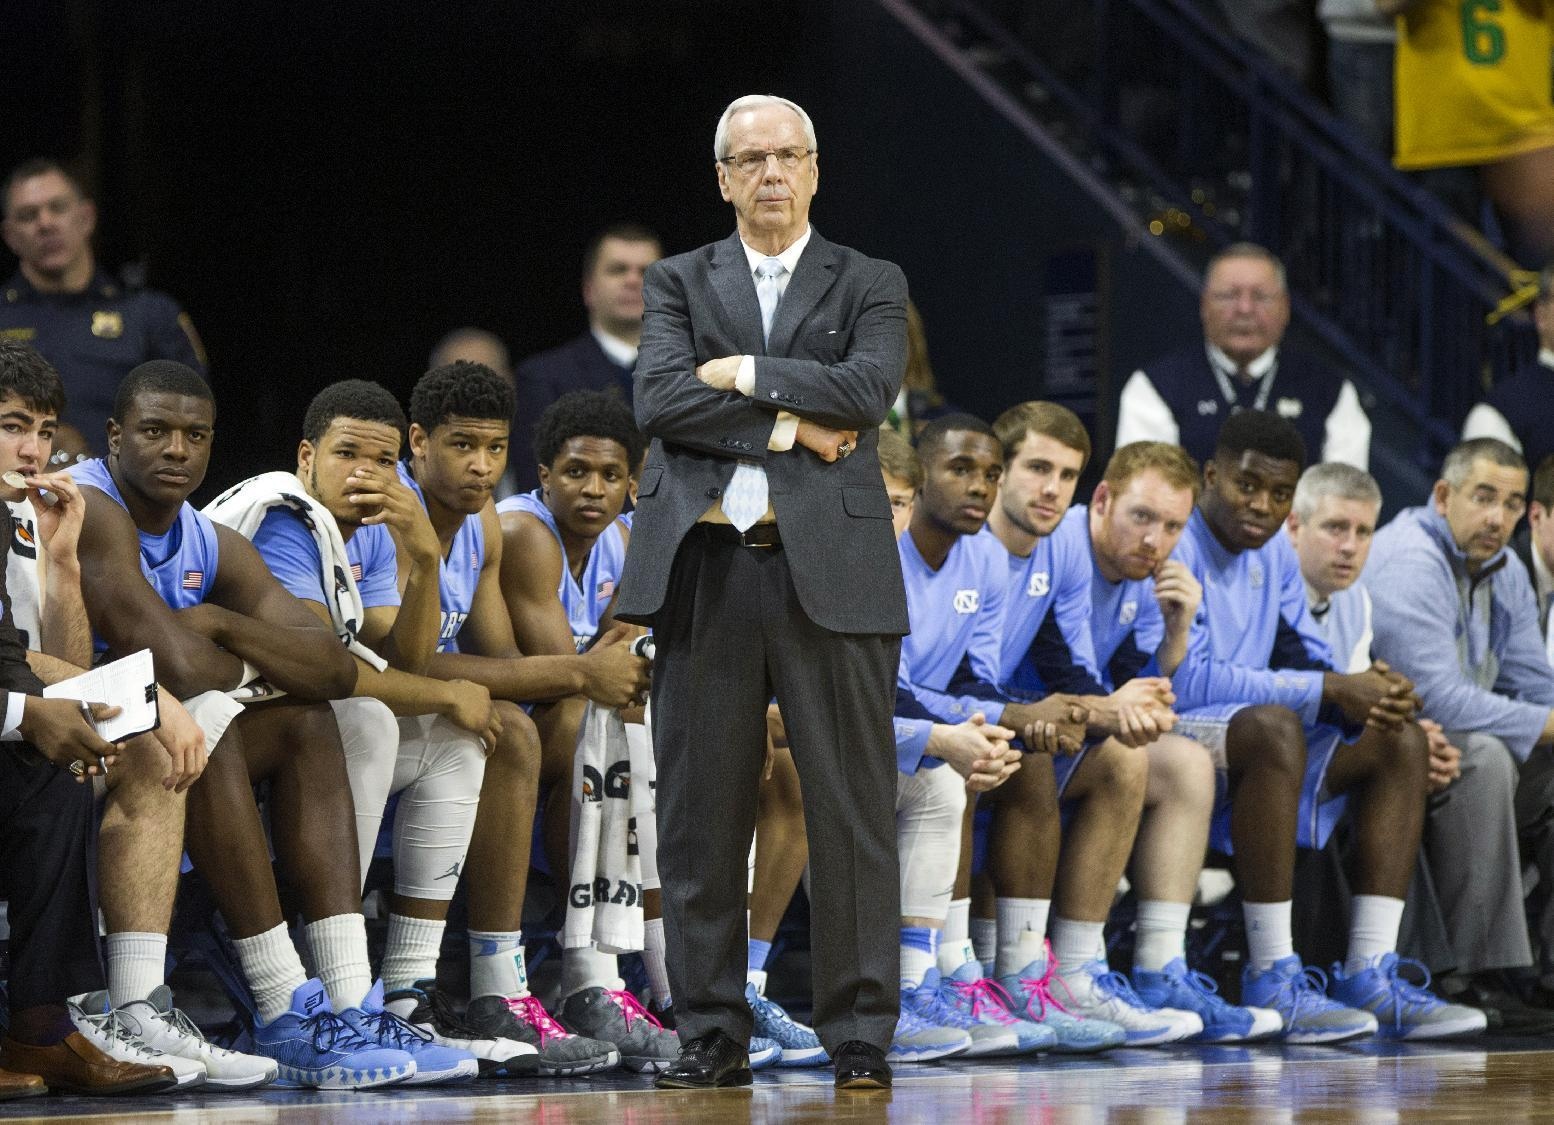 North Carolina's NCAA academic case stuck in holding pattern